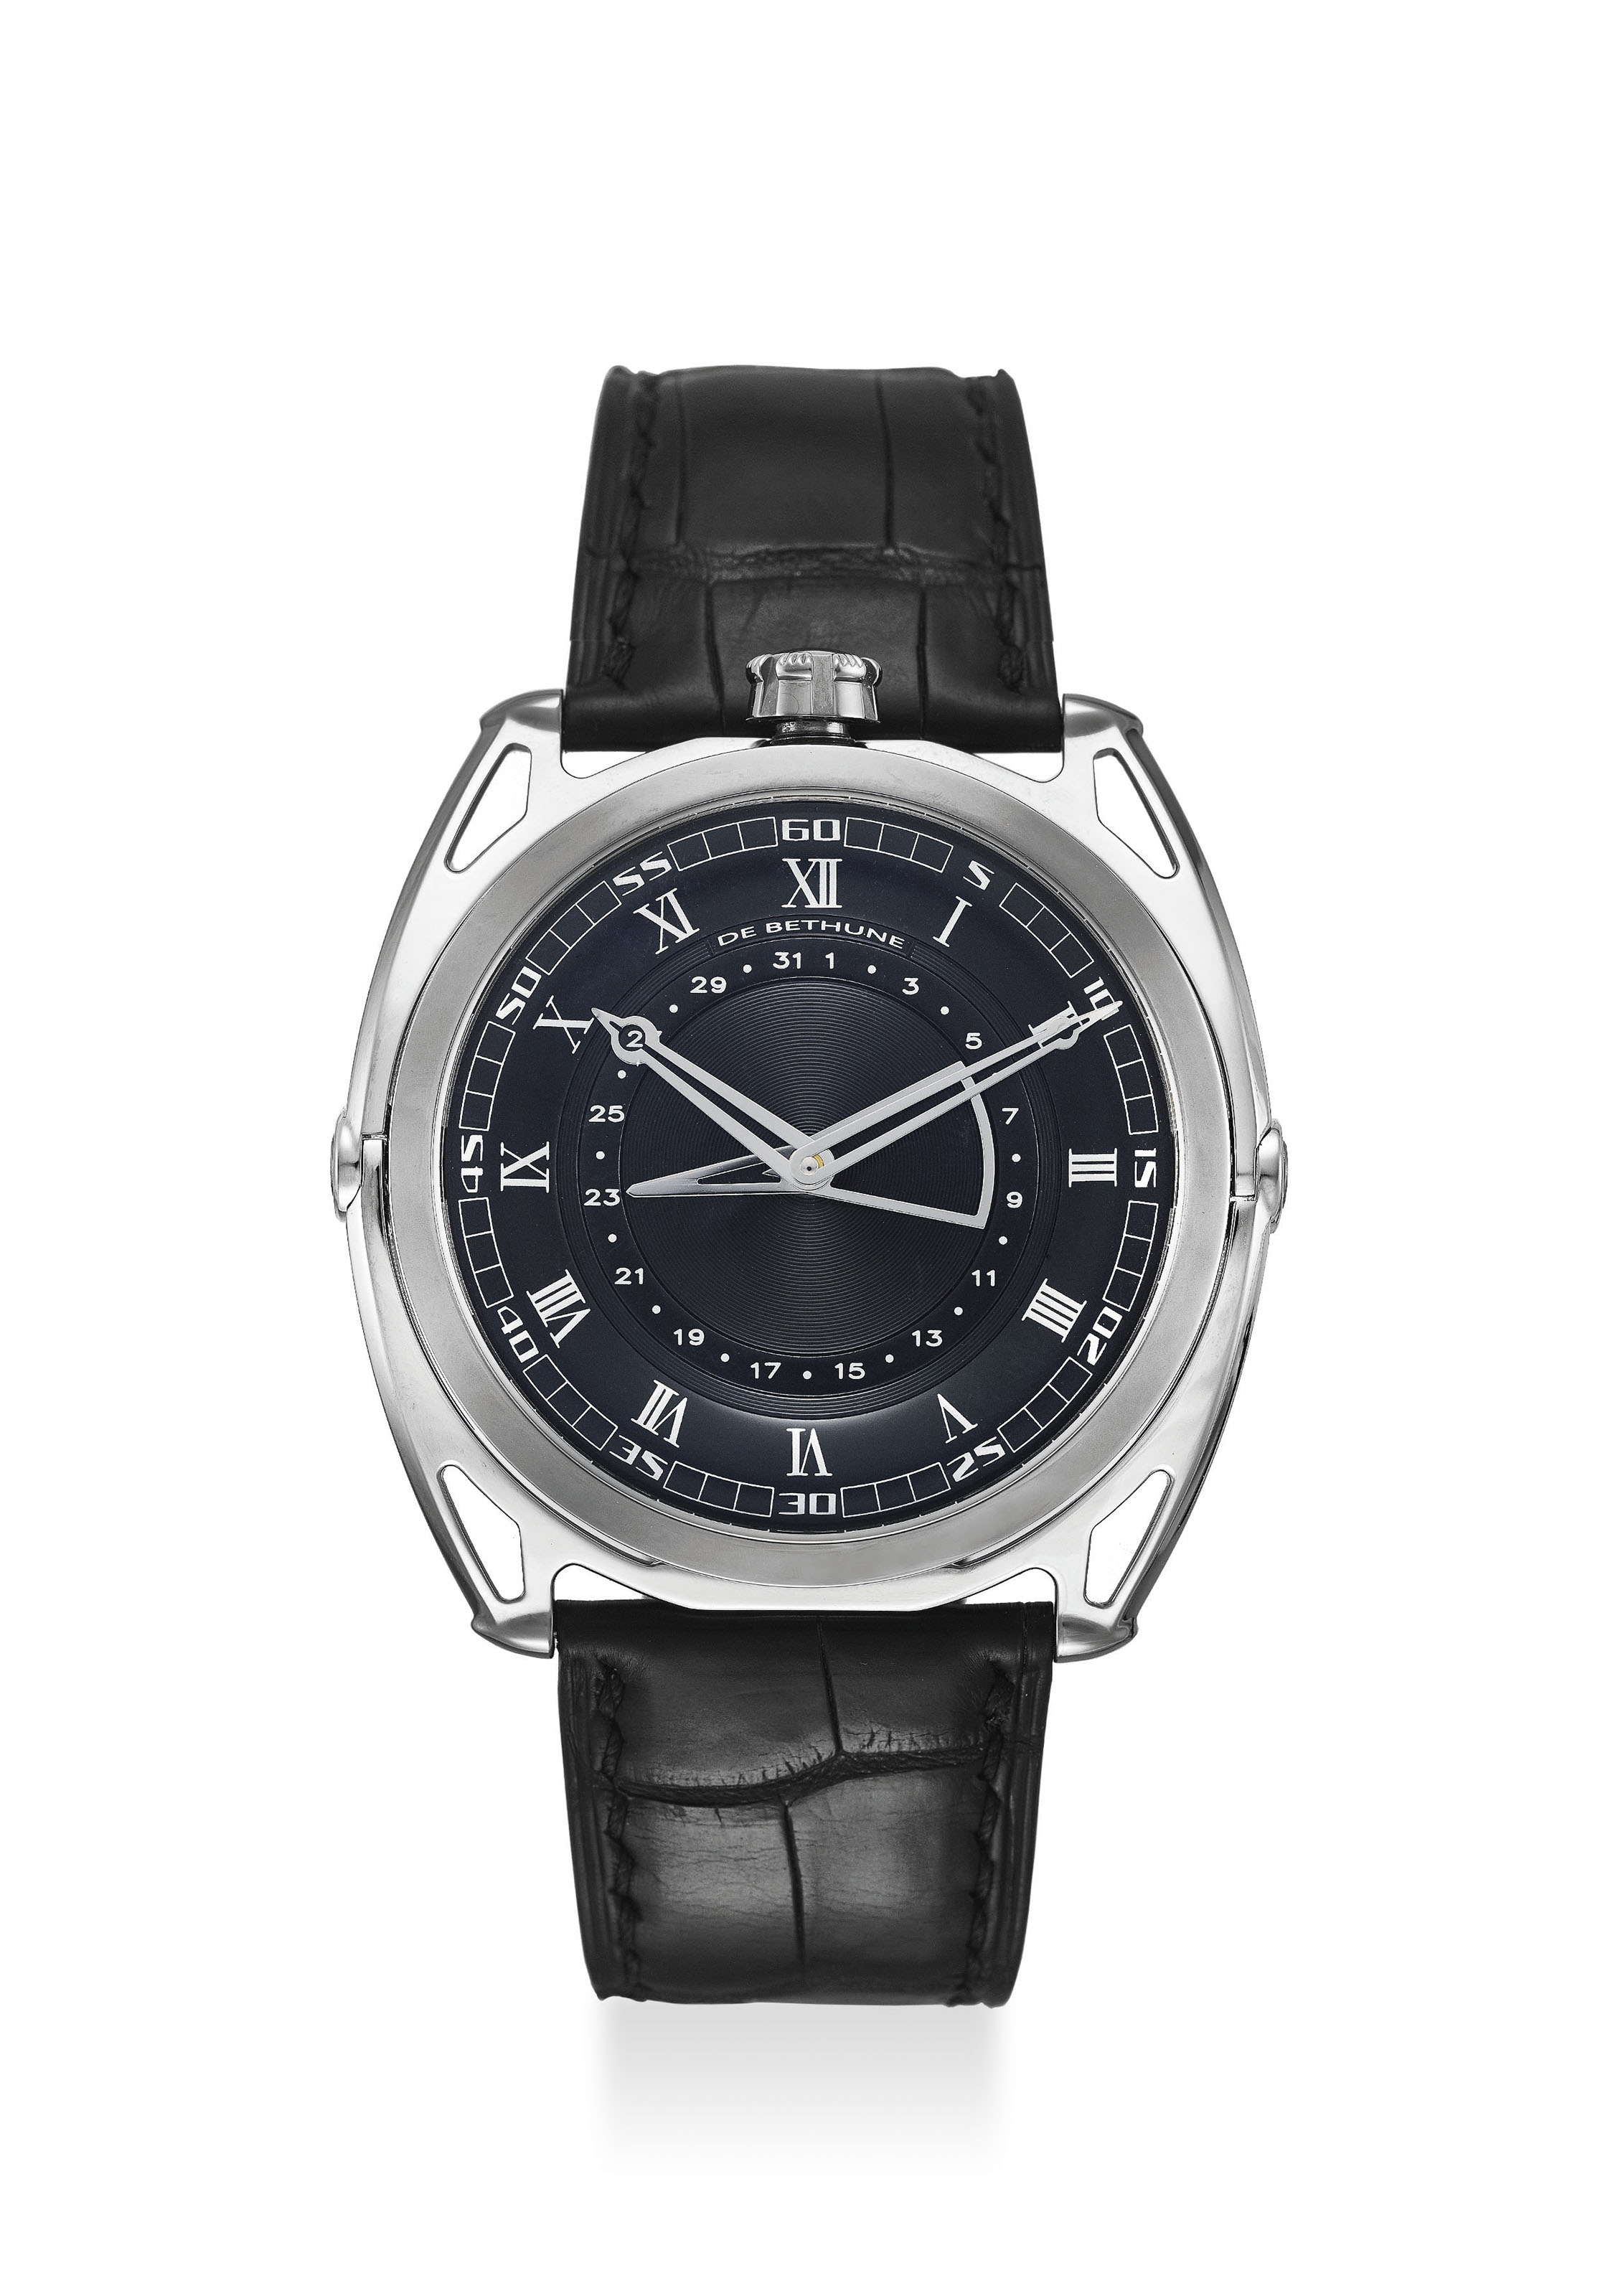 DE BETHUNE. AN EXTREMELY FINE TITANIUM AUTOMATIC WRISTWATCH WITH 6 DAYS POWER RESERVE, DATE, ORIGINAL CERTIFICATE AND BOX